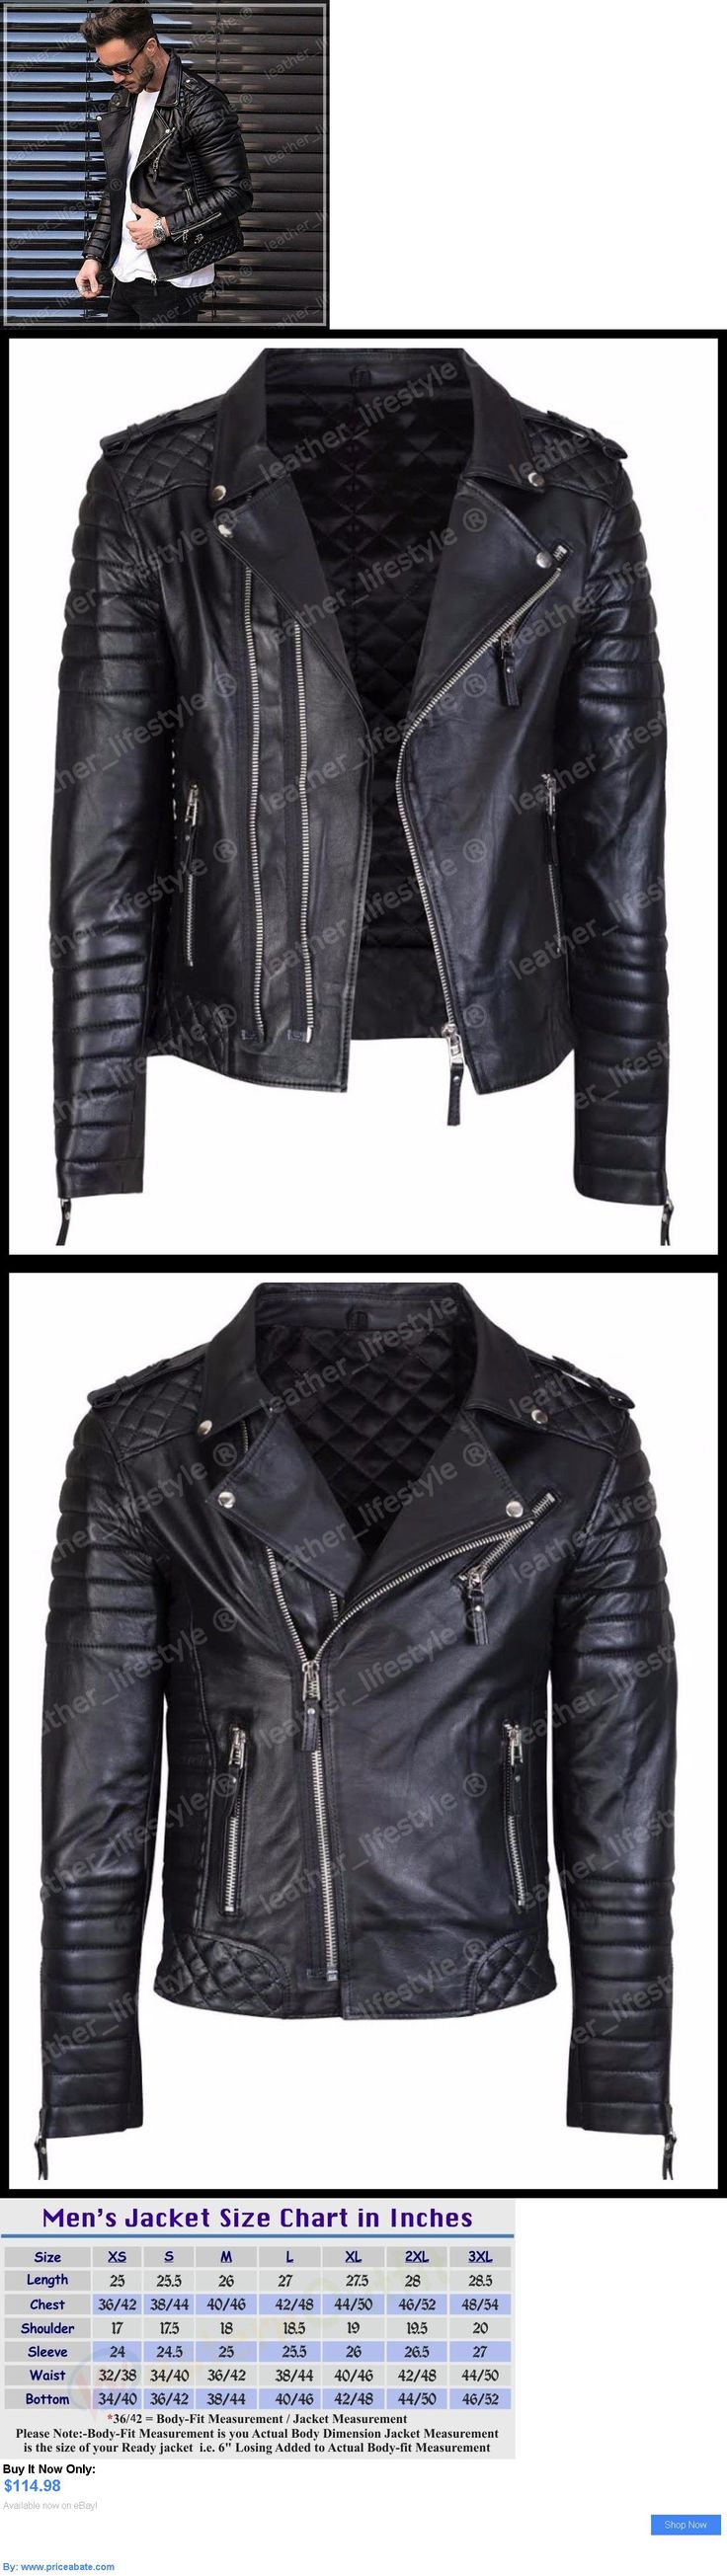 Leather jacket vs motorcycle jacket - Leather Jackets Vs Textile For Motorcycle